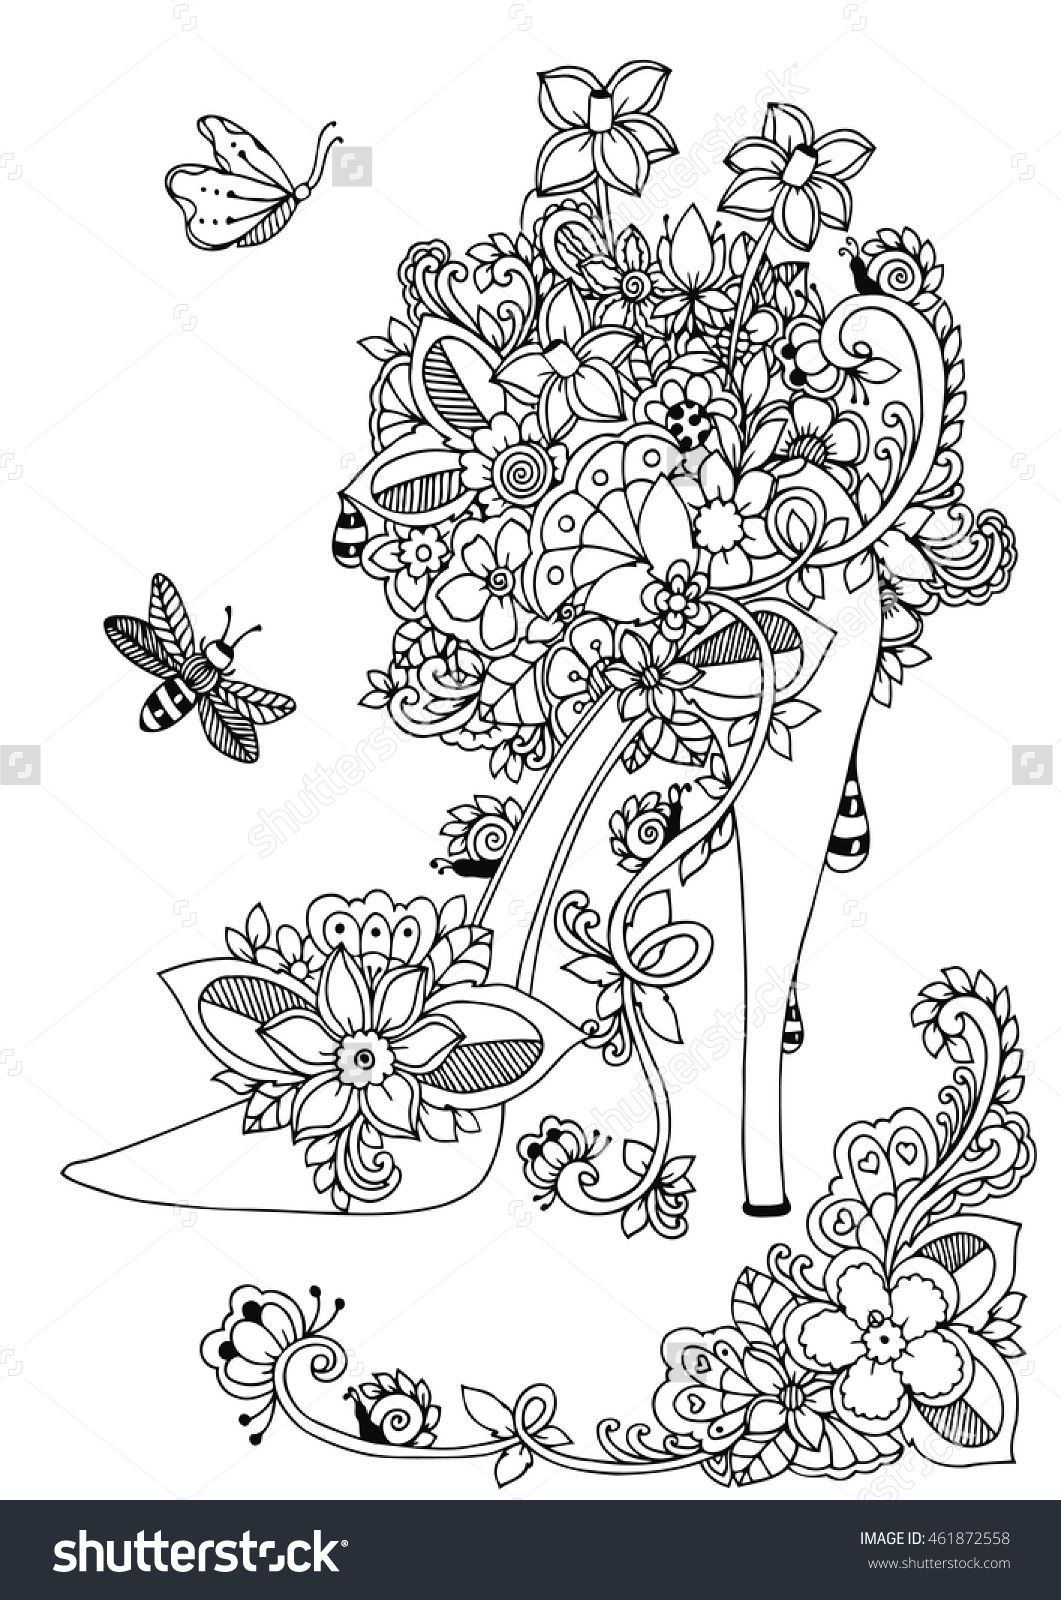 Pin On Zentangles Adult Colouring Coloring Pages